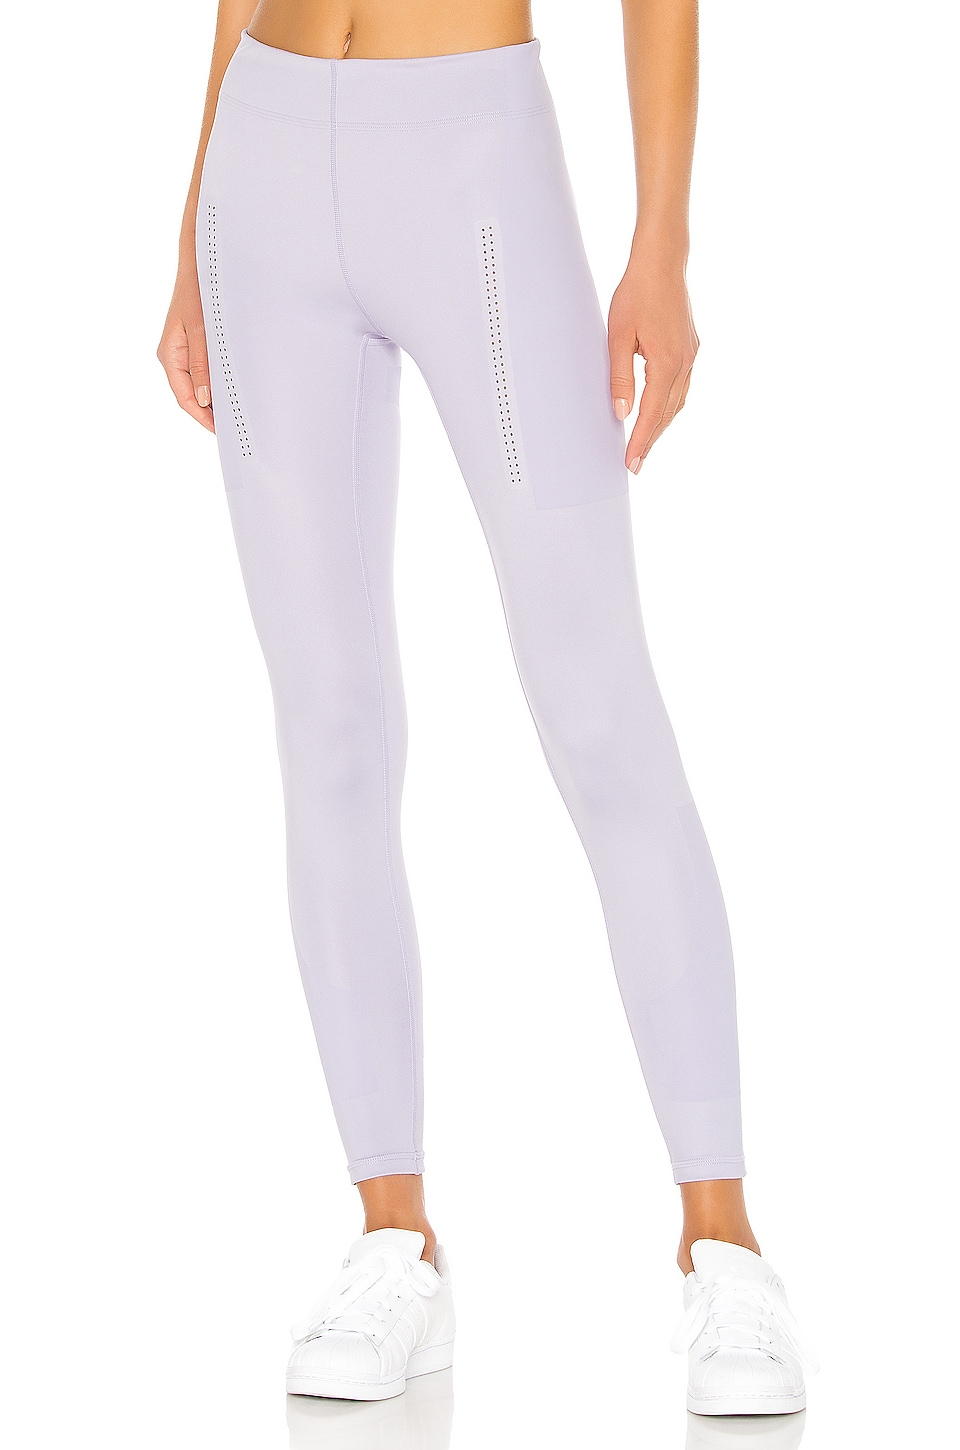 adidas by Stella McCartney Train Legging in Iced Lavender